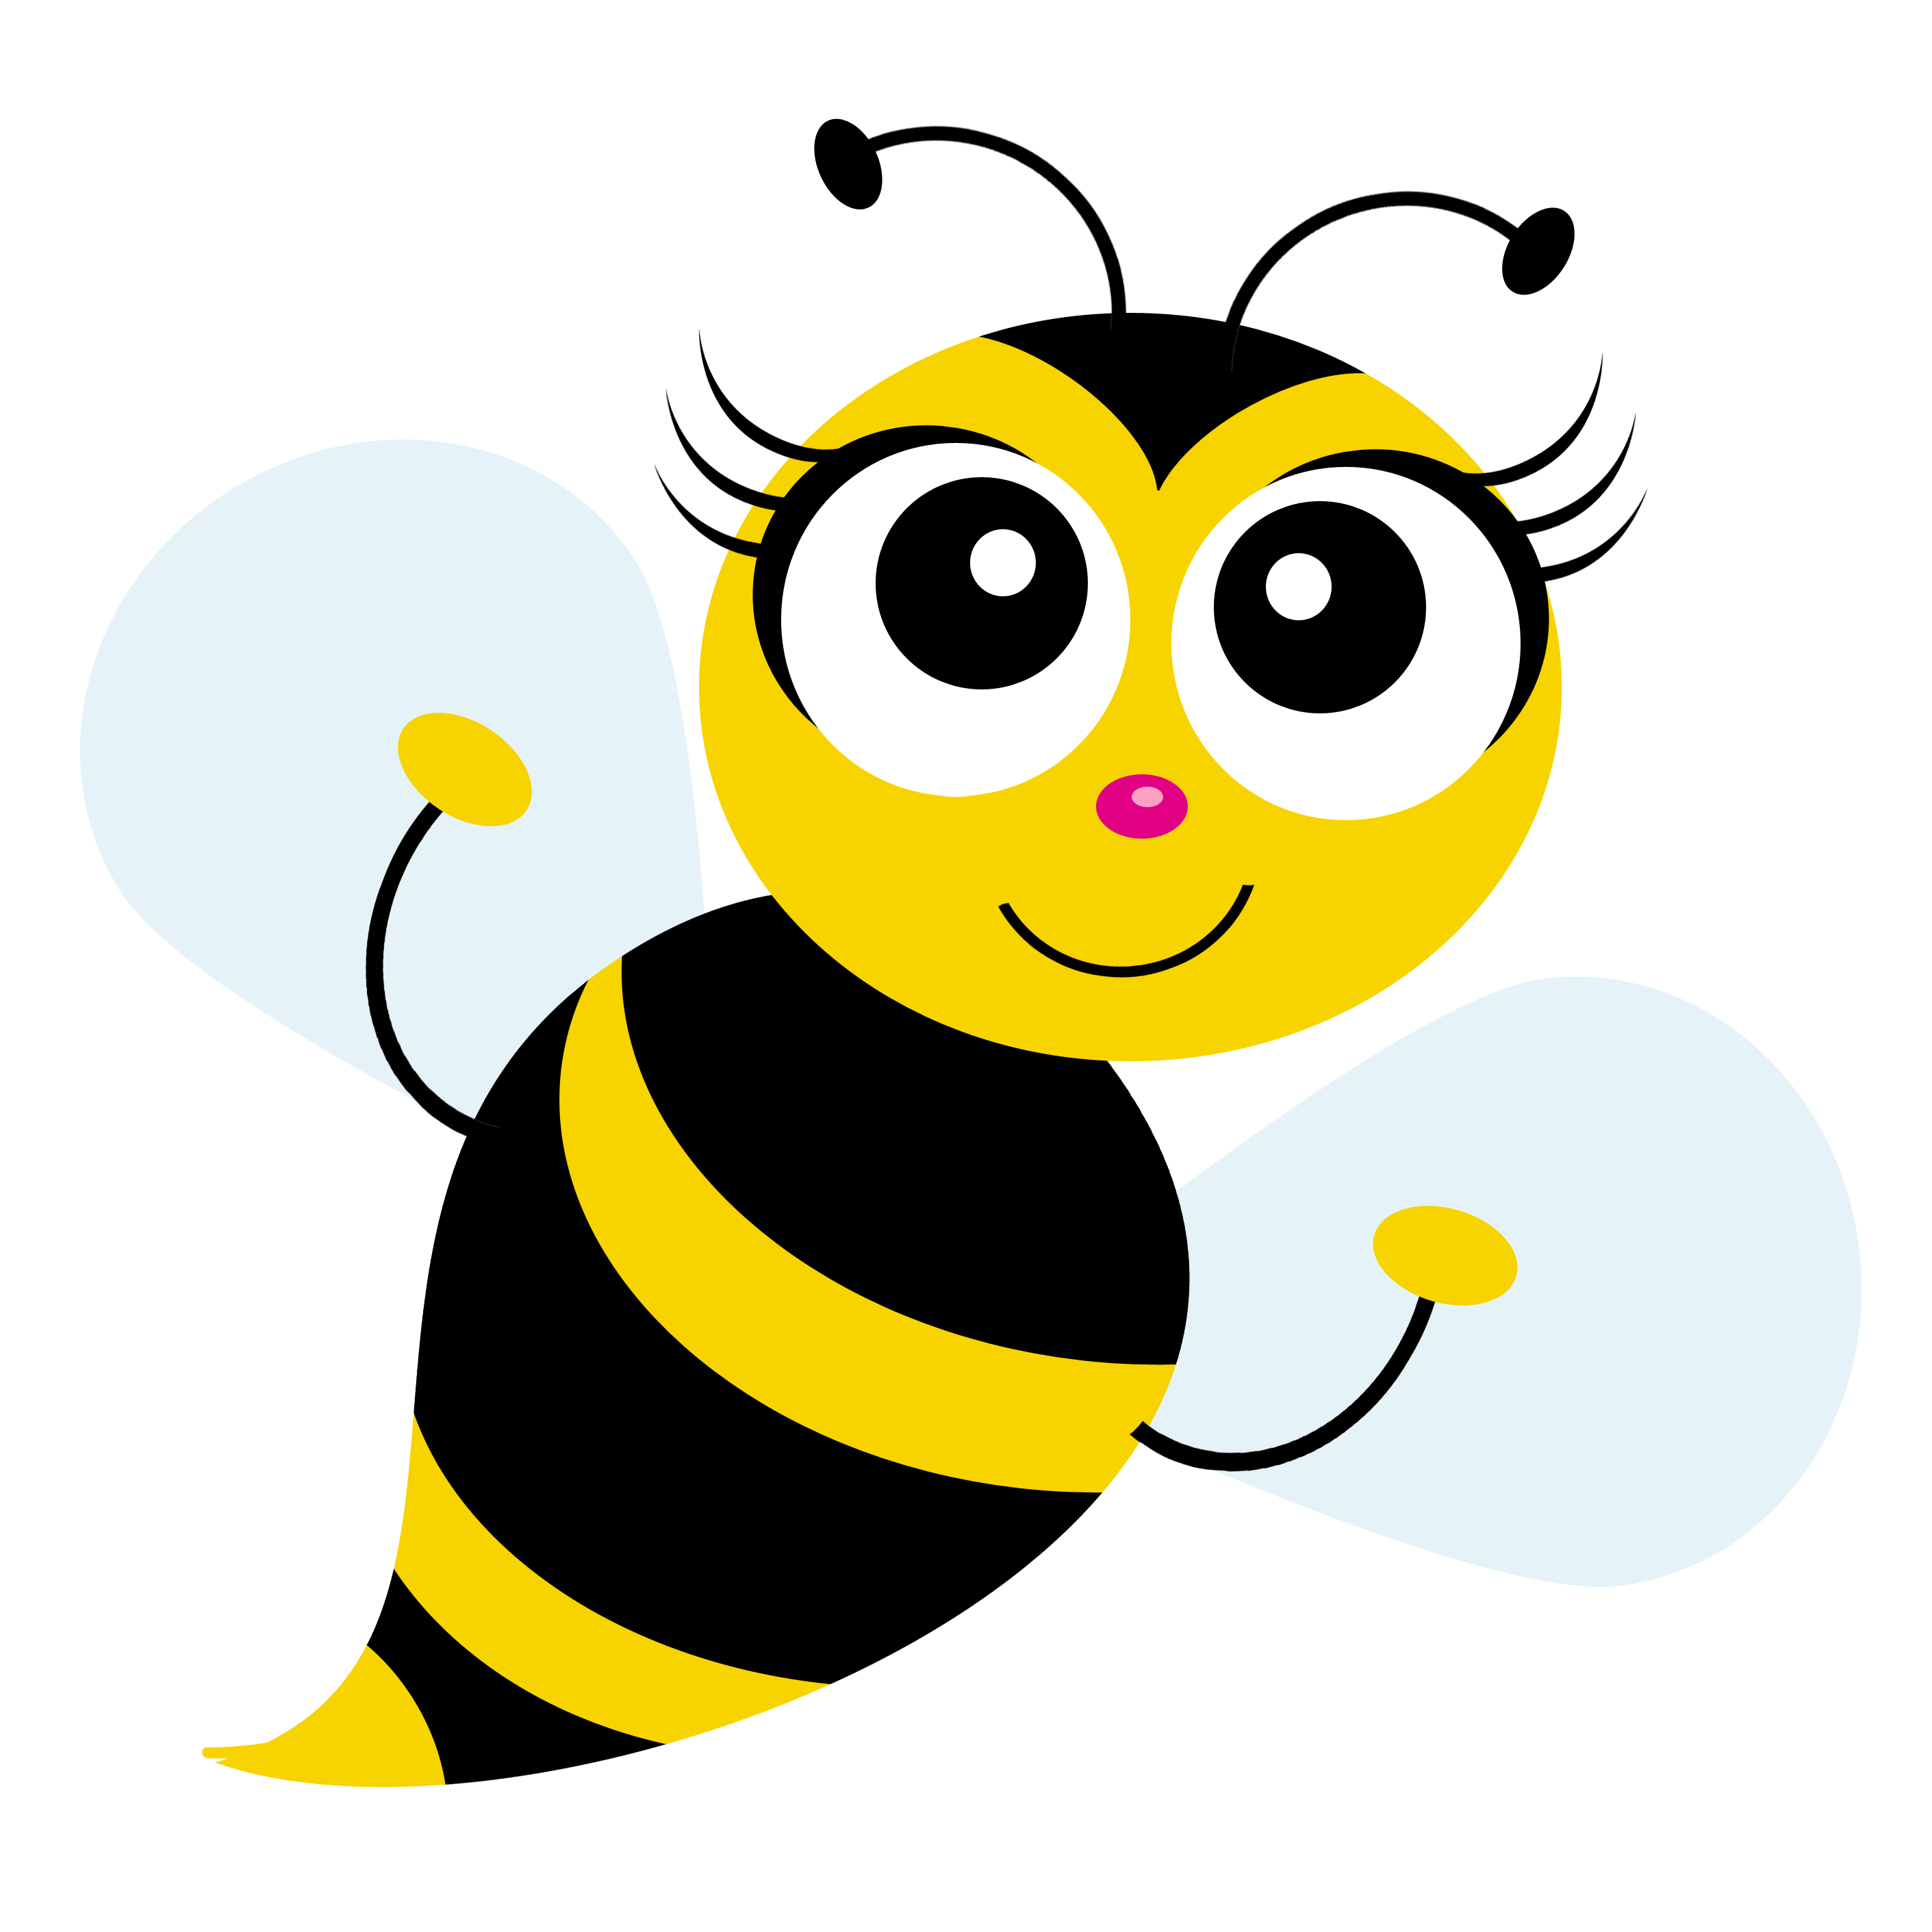 Cute honey bee png. Clipart crazywidow info